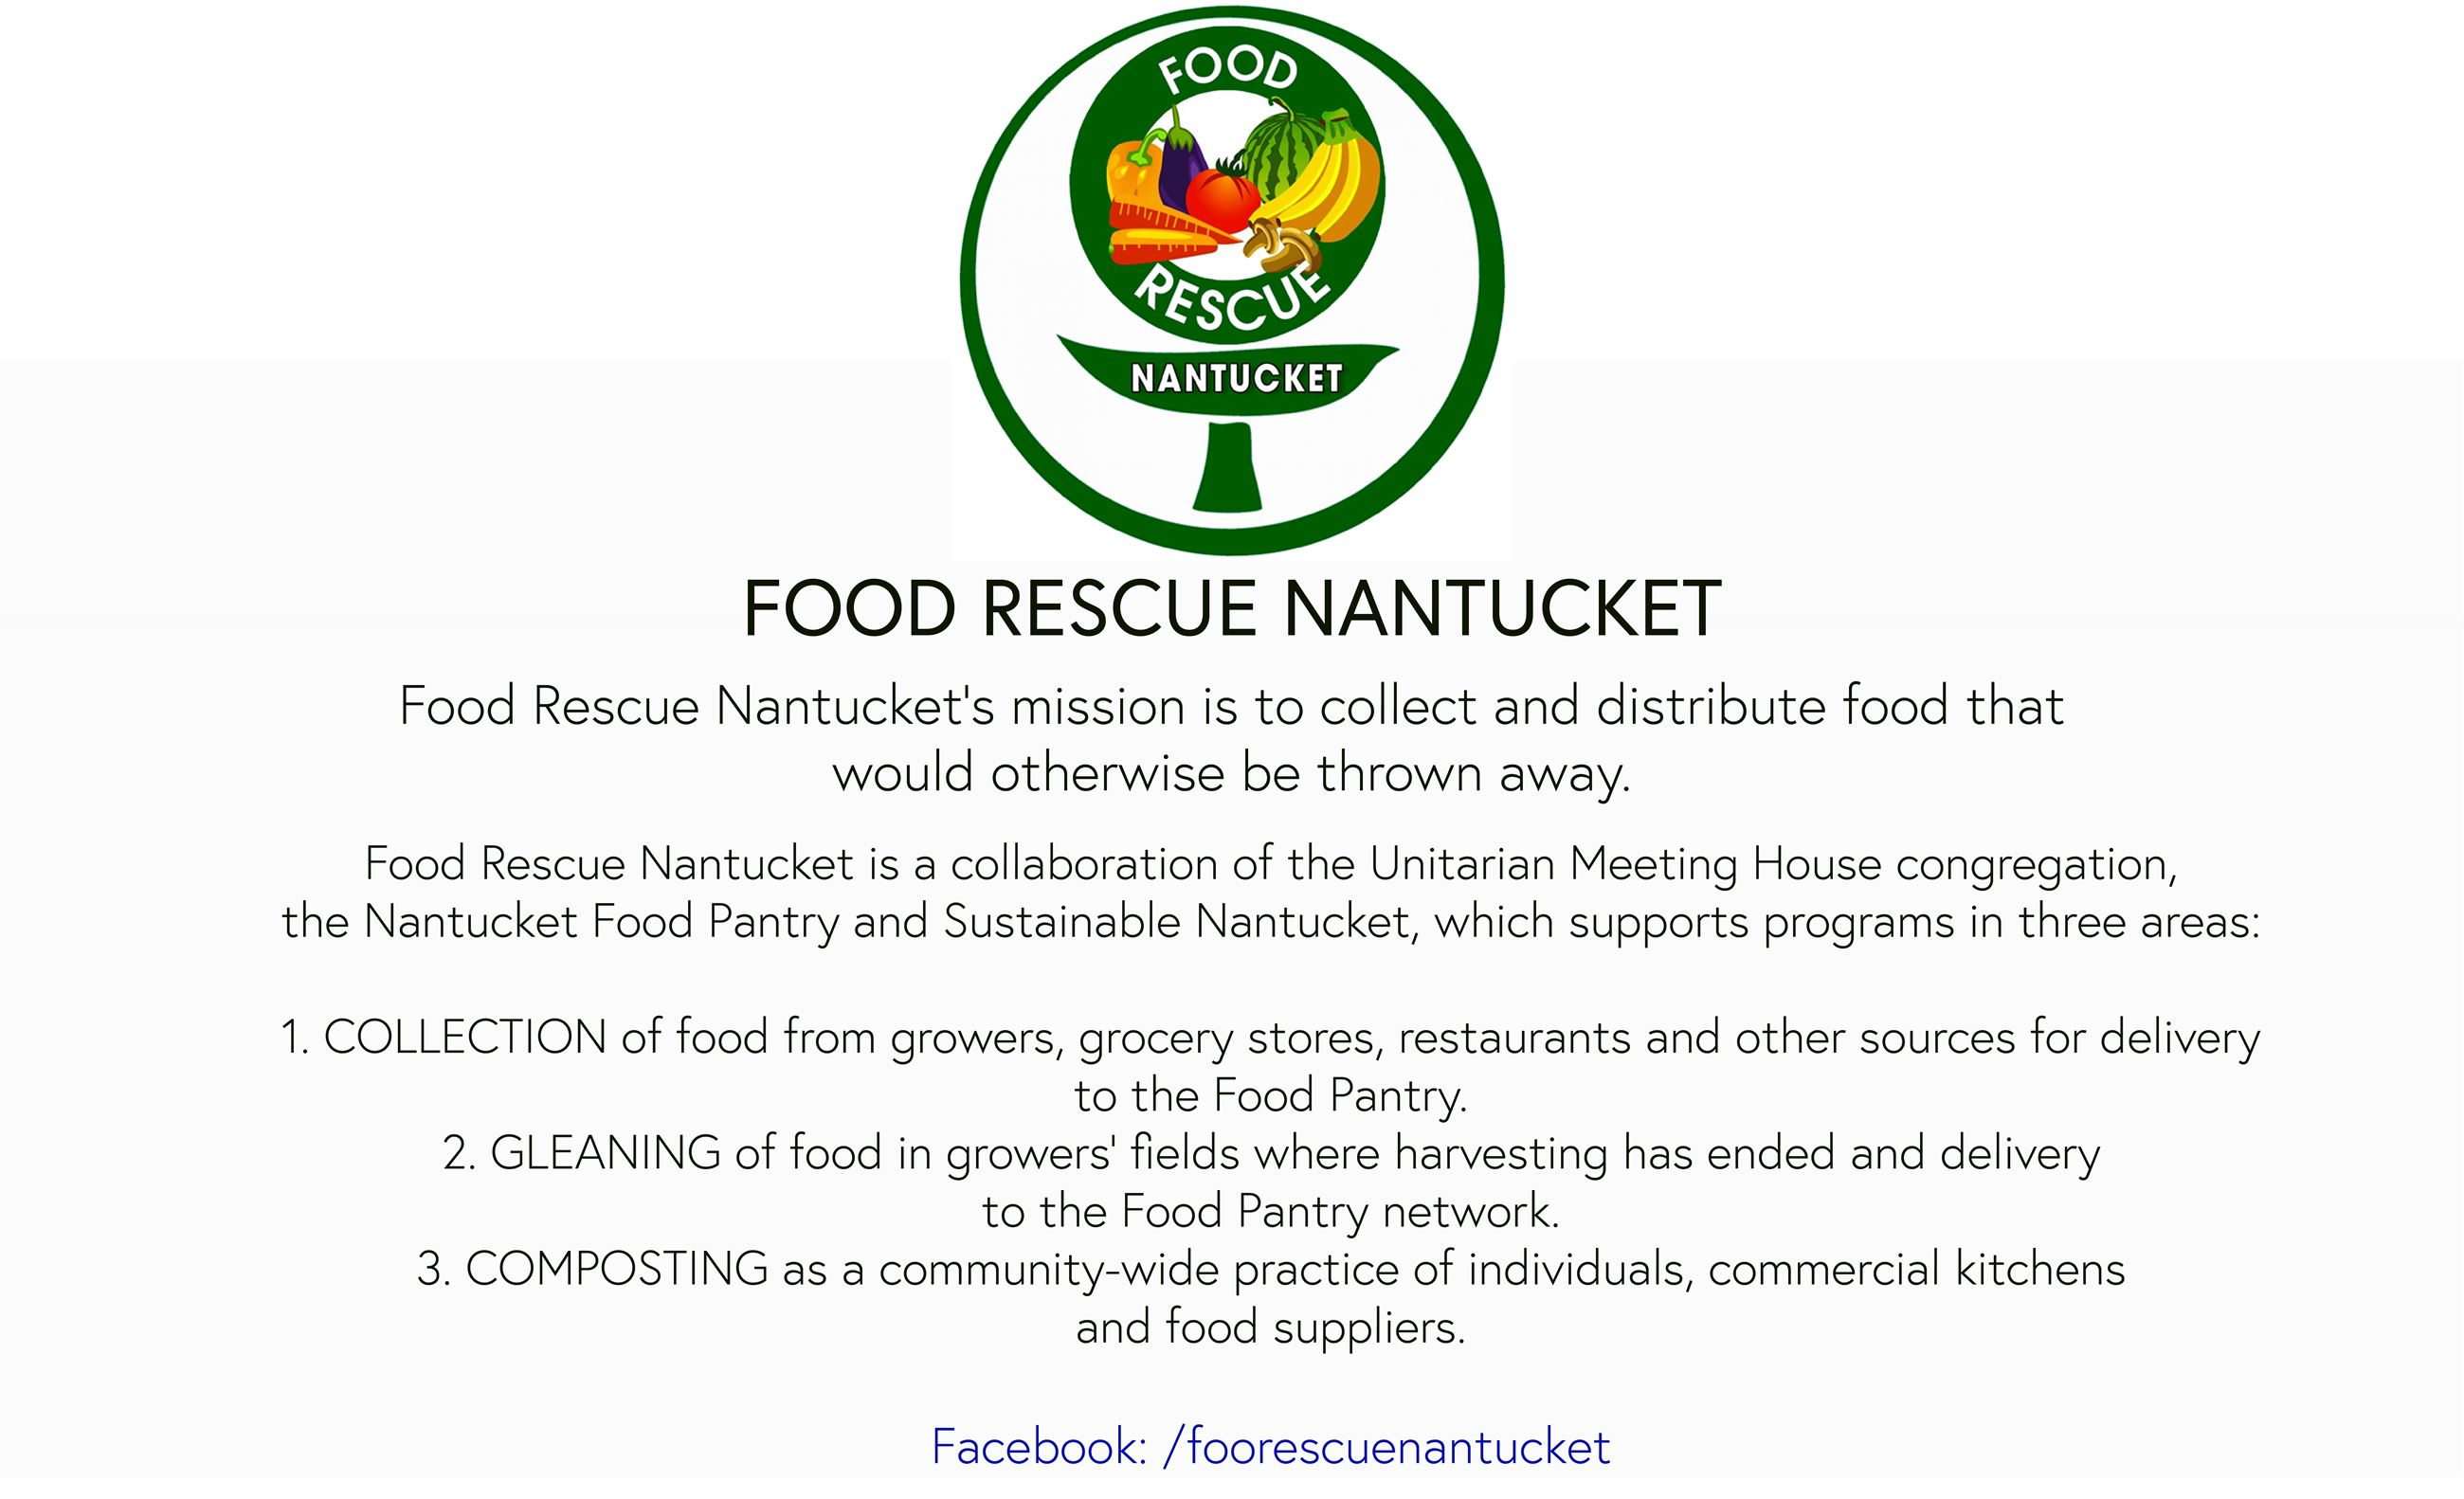 Food Rescue Nantucket